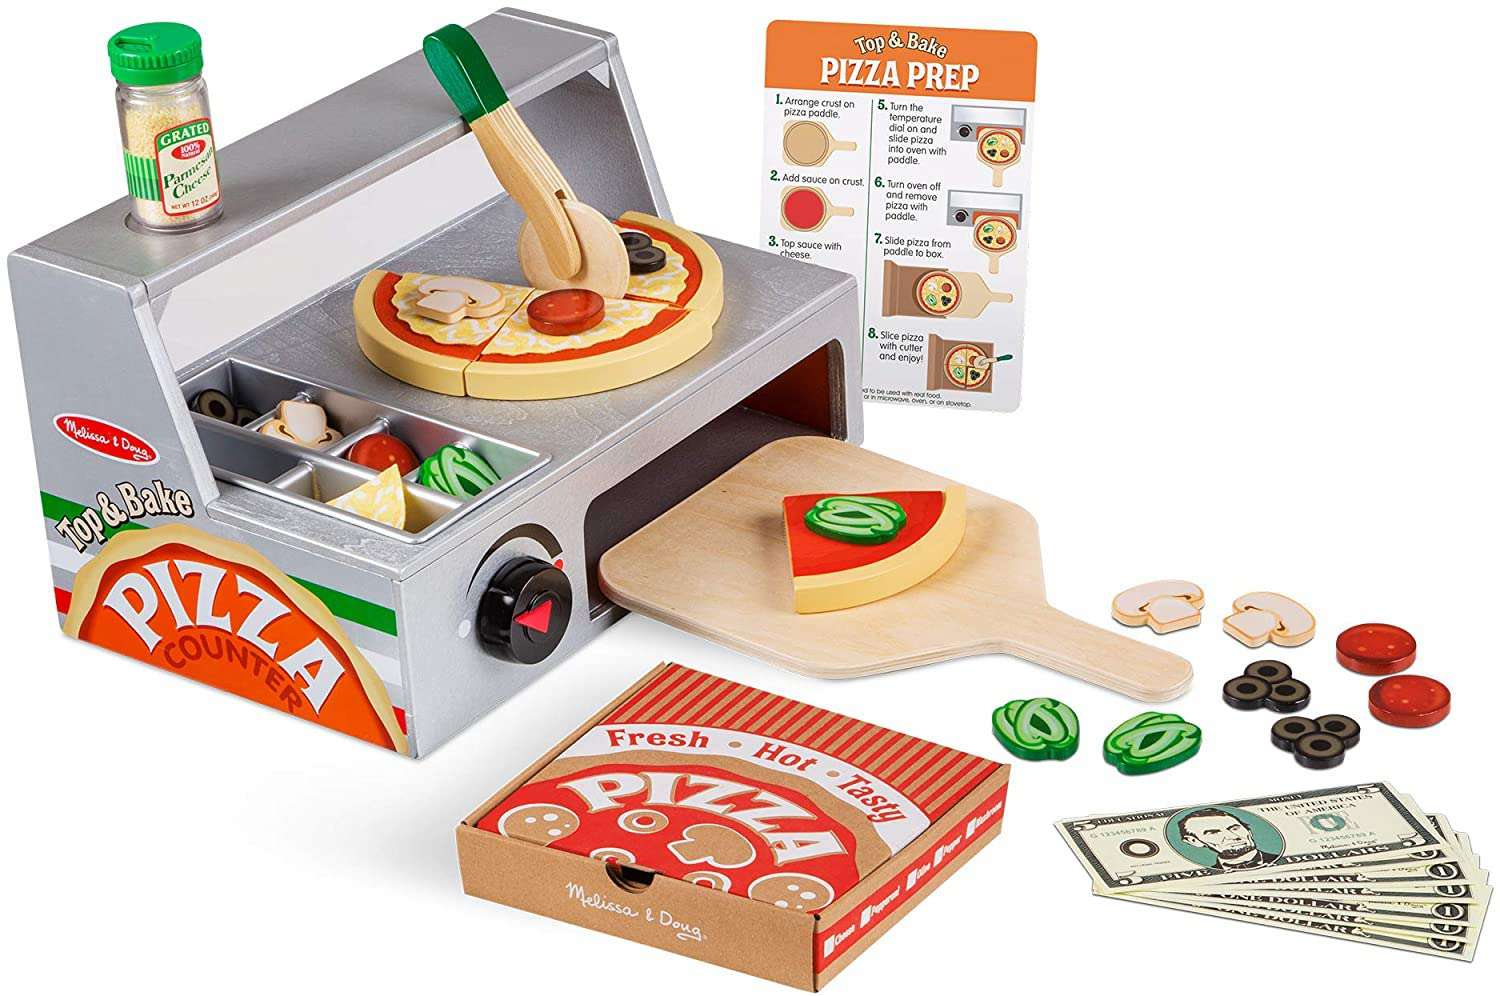 Melissa & Doug Top and Bake Wooden Pizza Counter Play